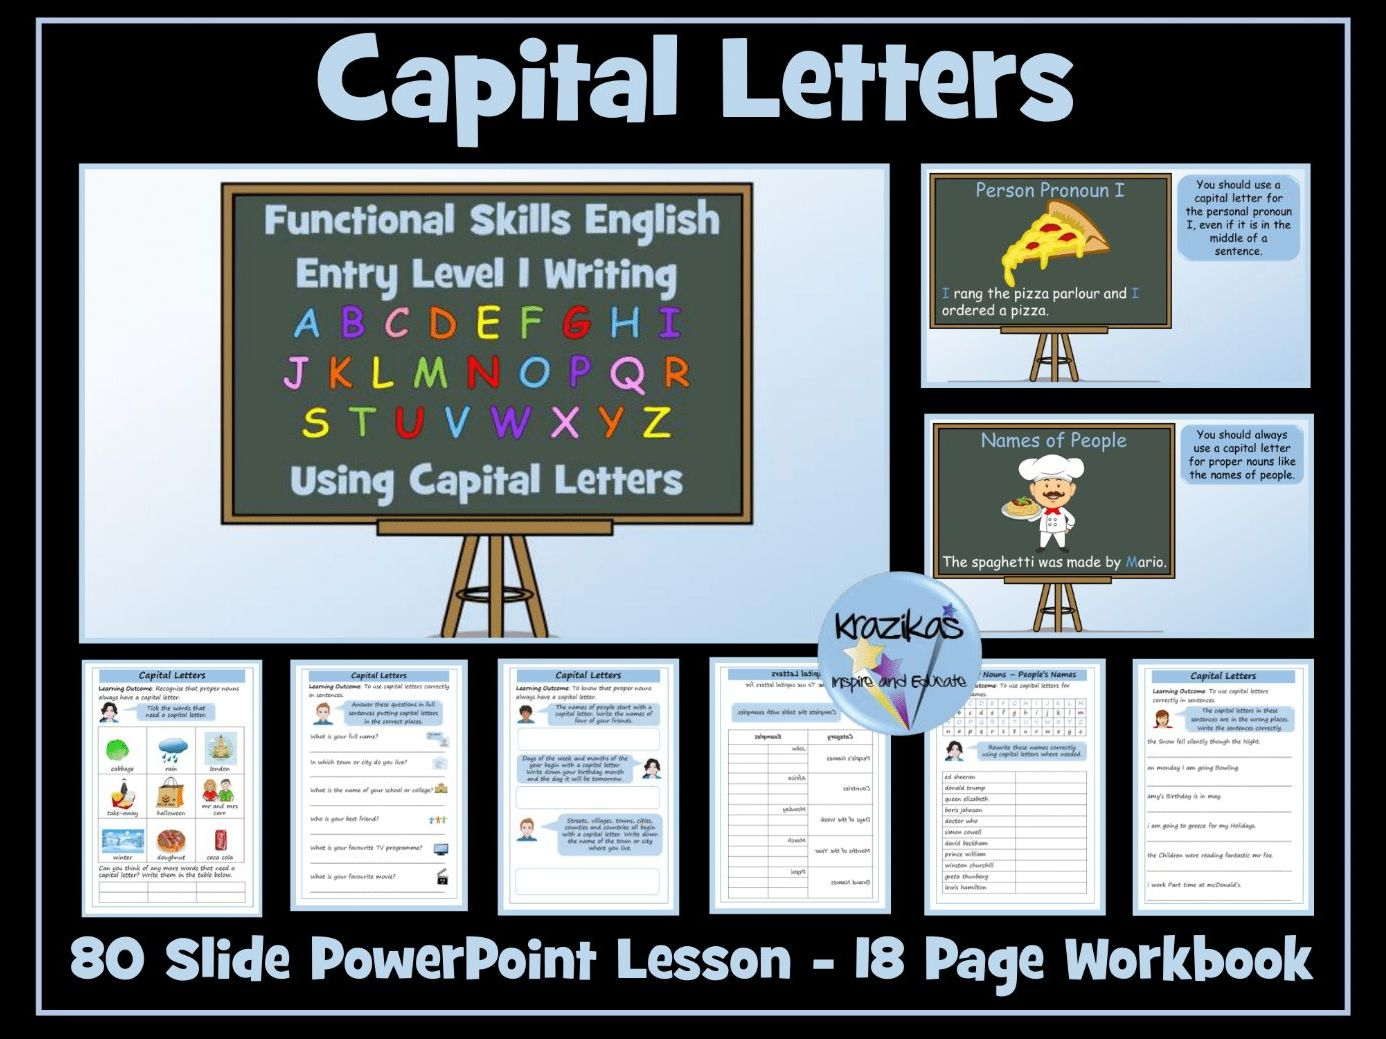 English Functional Skills - Entry Level 1 - Capital Letters